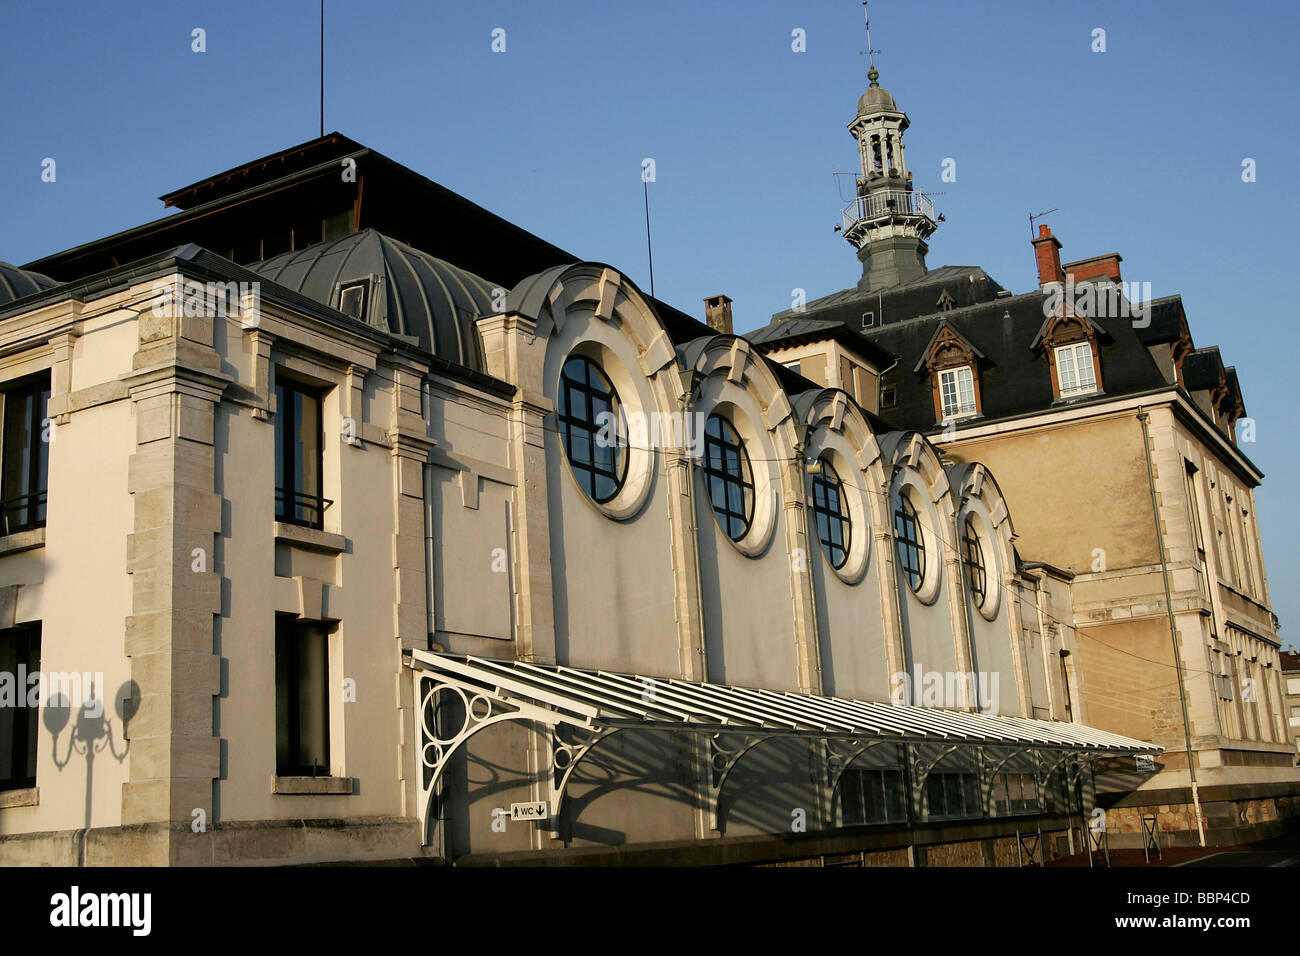 THEATER, COMMENTRY, ALLIER (03), FRANCE - Stock Image